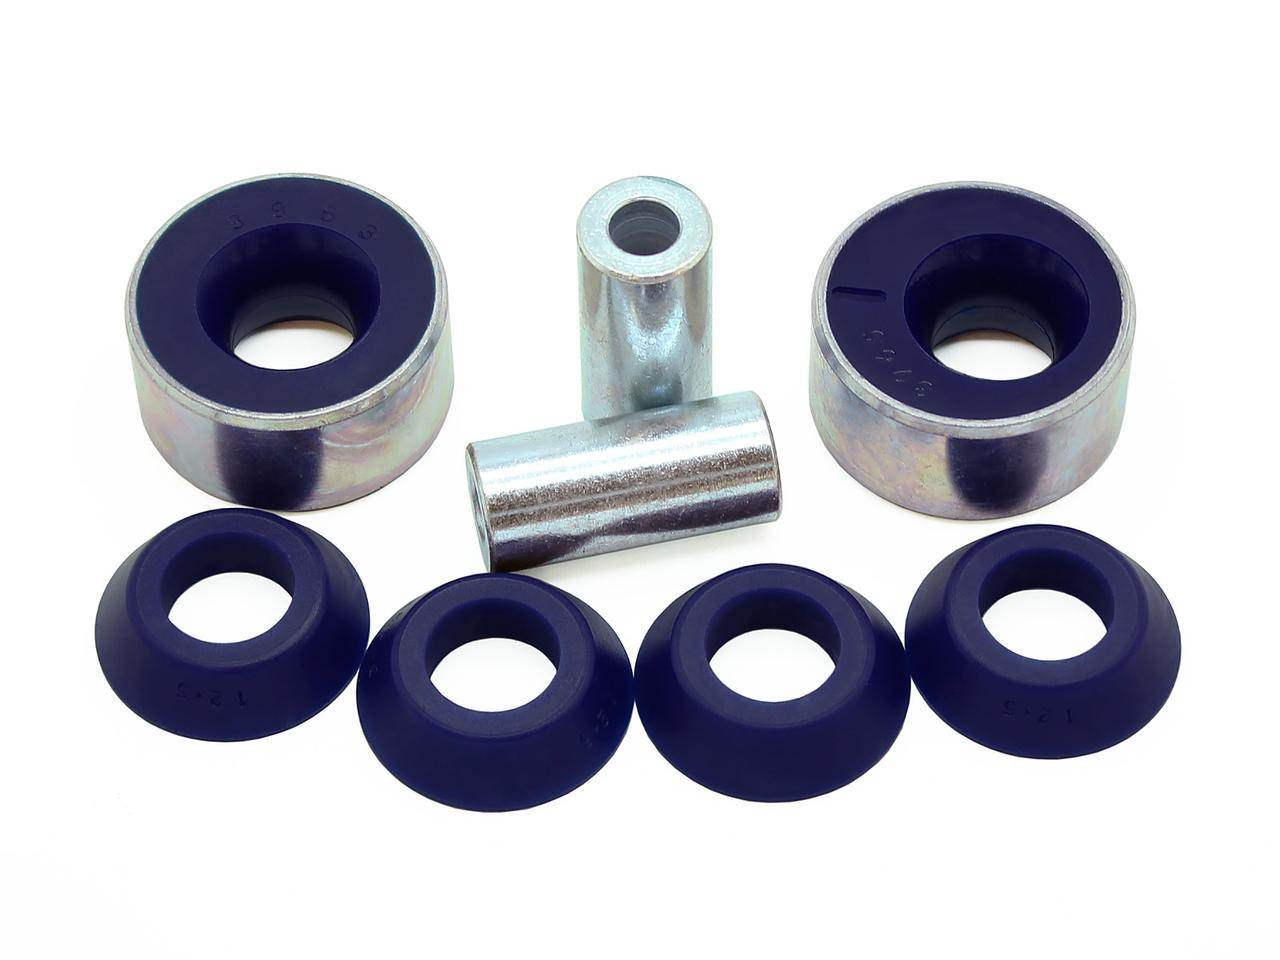 Renault Megane Mk2 SuperPro Control Arm Lower-Rear Bush Kit: Performance Alignment Kit